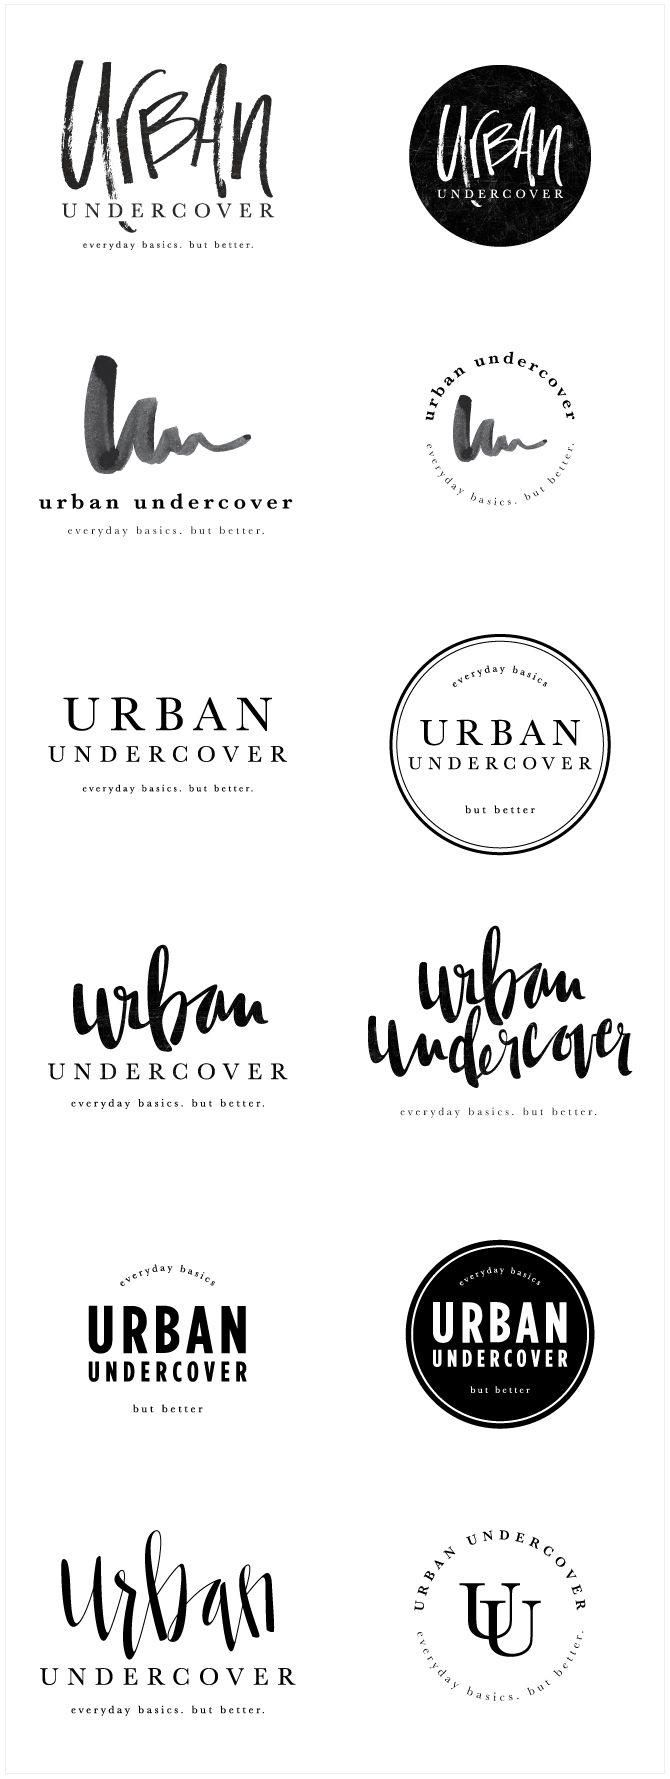 found by hedviggen ⚓️ on pinterest | ci & packaging | fonts | gfx | personalized | paper | craft | design | business card | Logo Design | branding | Brand Board | Web Design